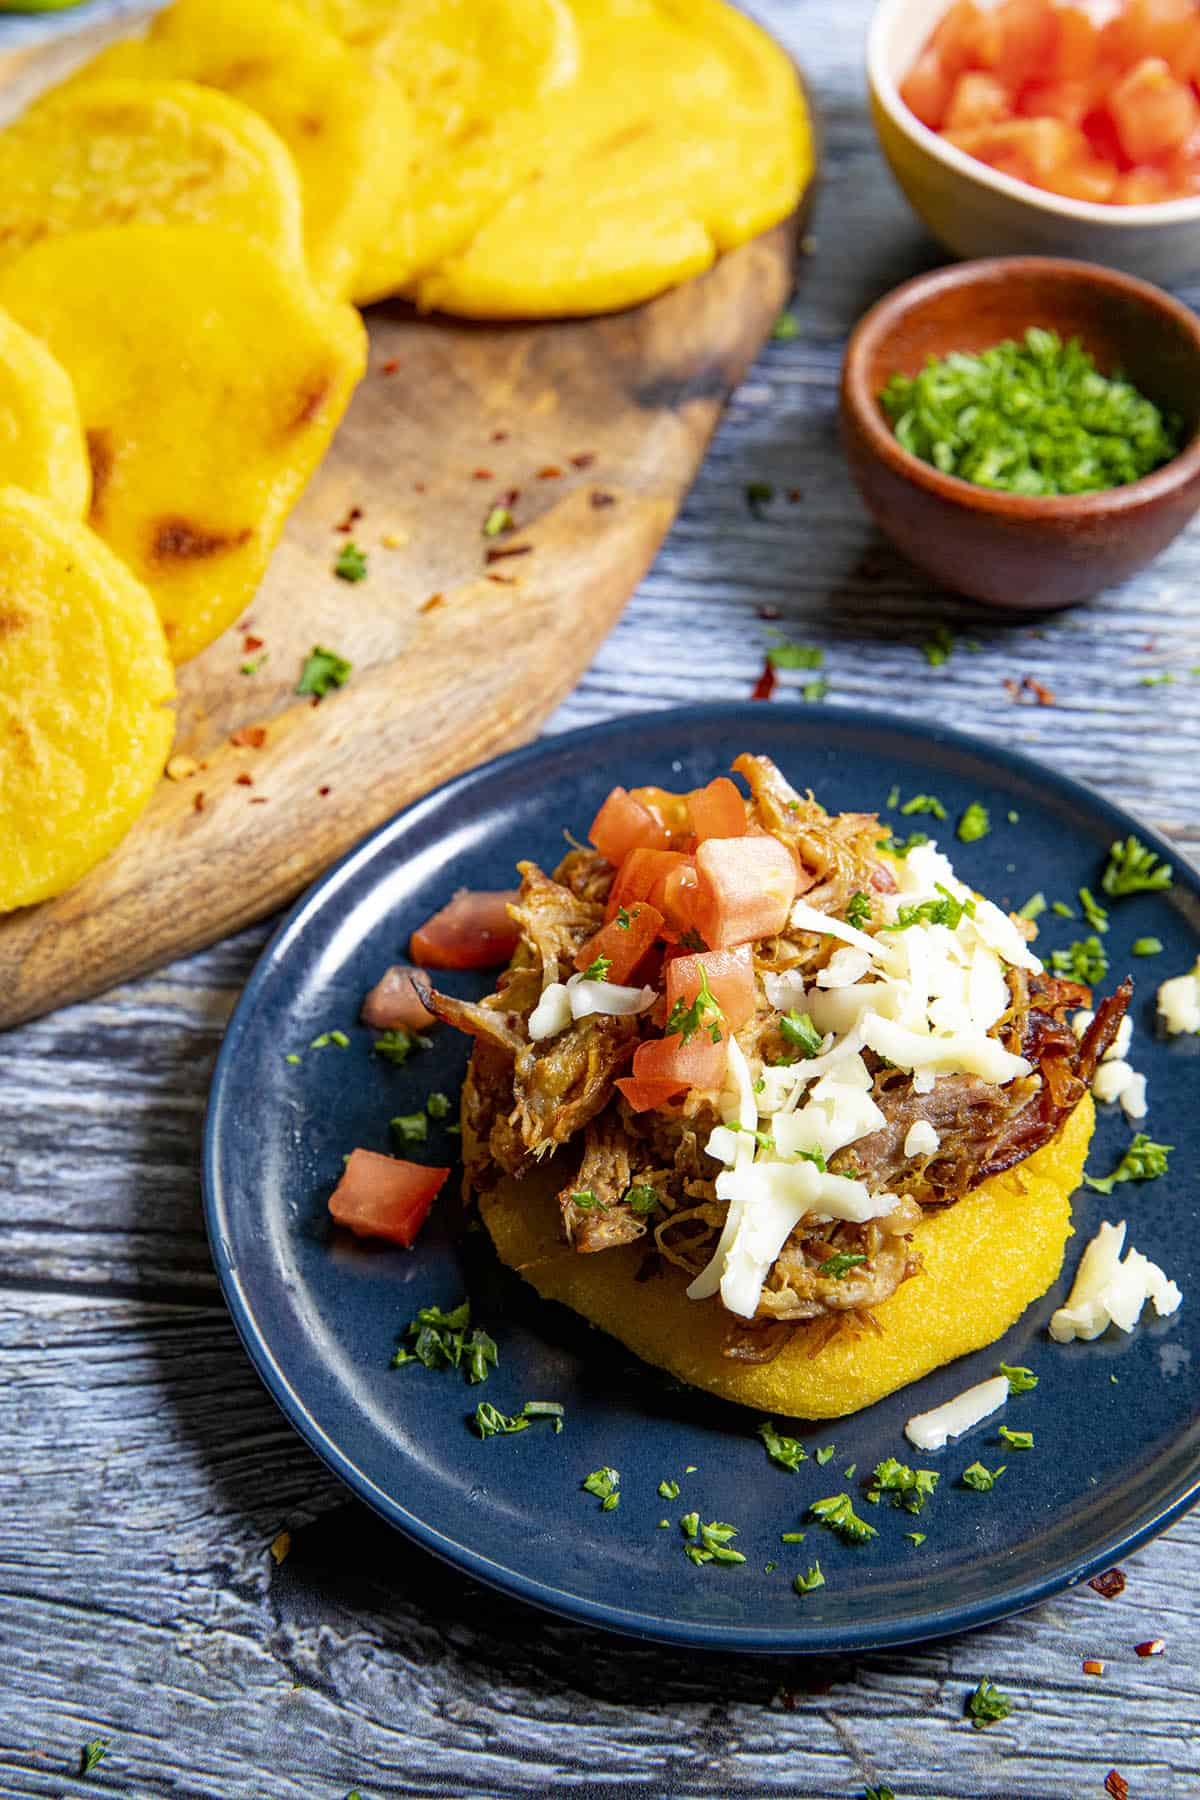 An arepa topped with pulled pork, shredded cheese and diced tomato with an extra stack of arepas